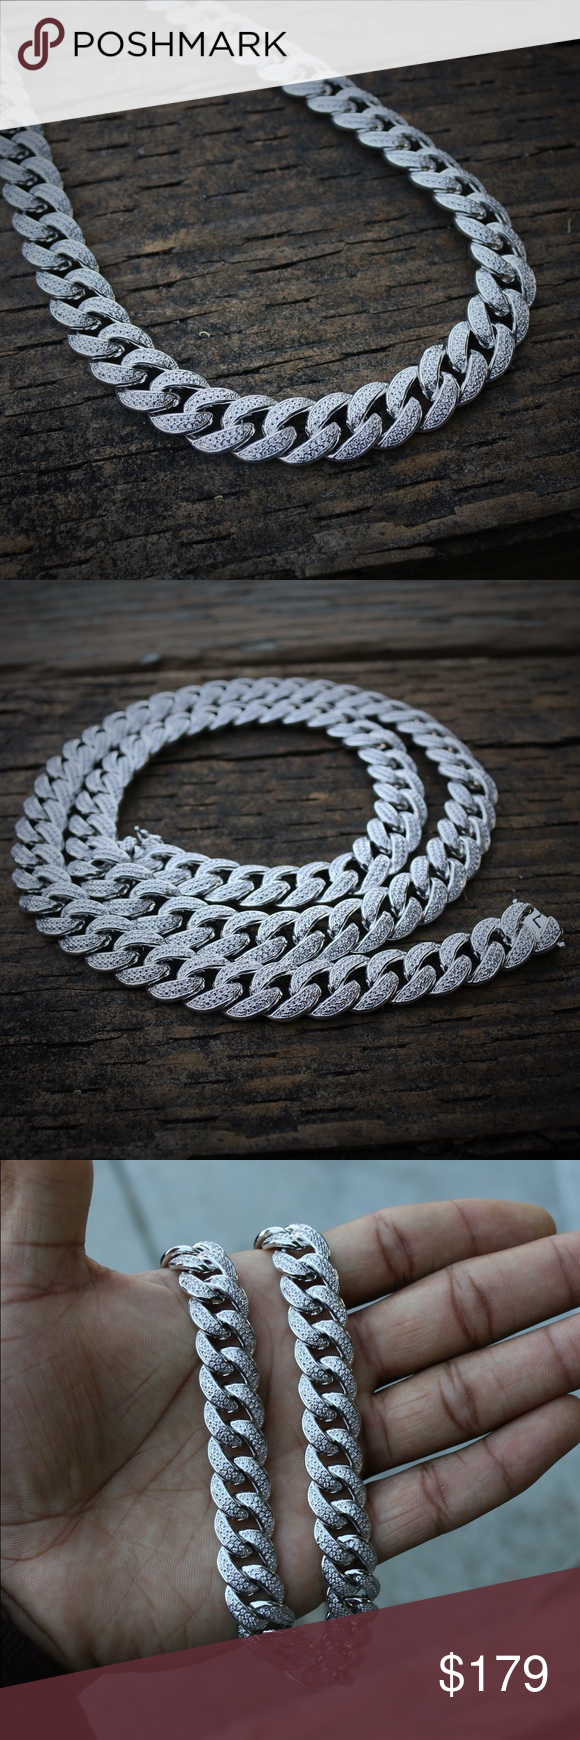 White Gold Iced Out Cuban Link Chain Necklace Boutique